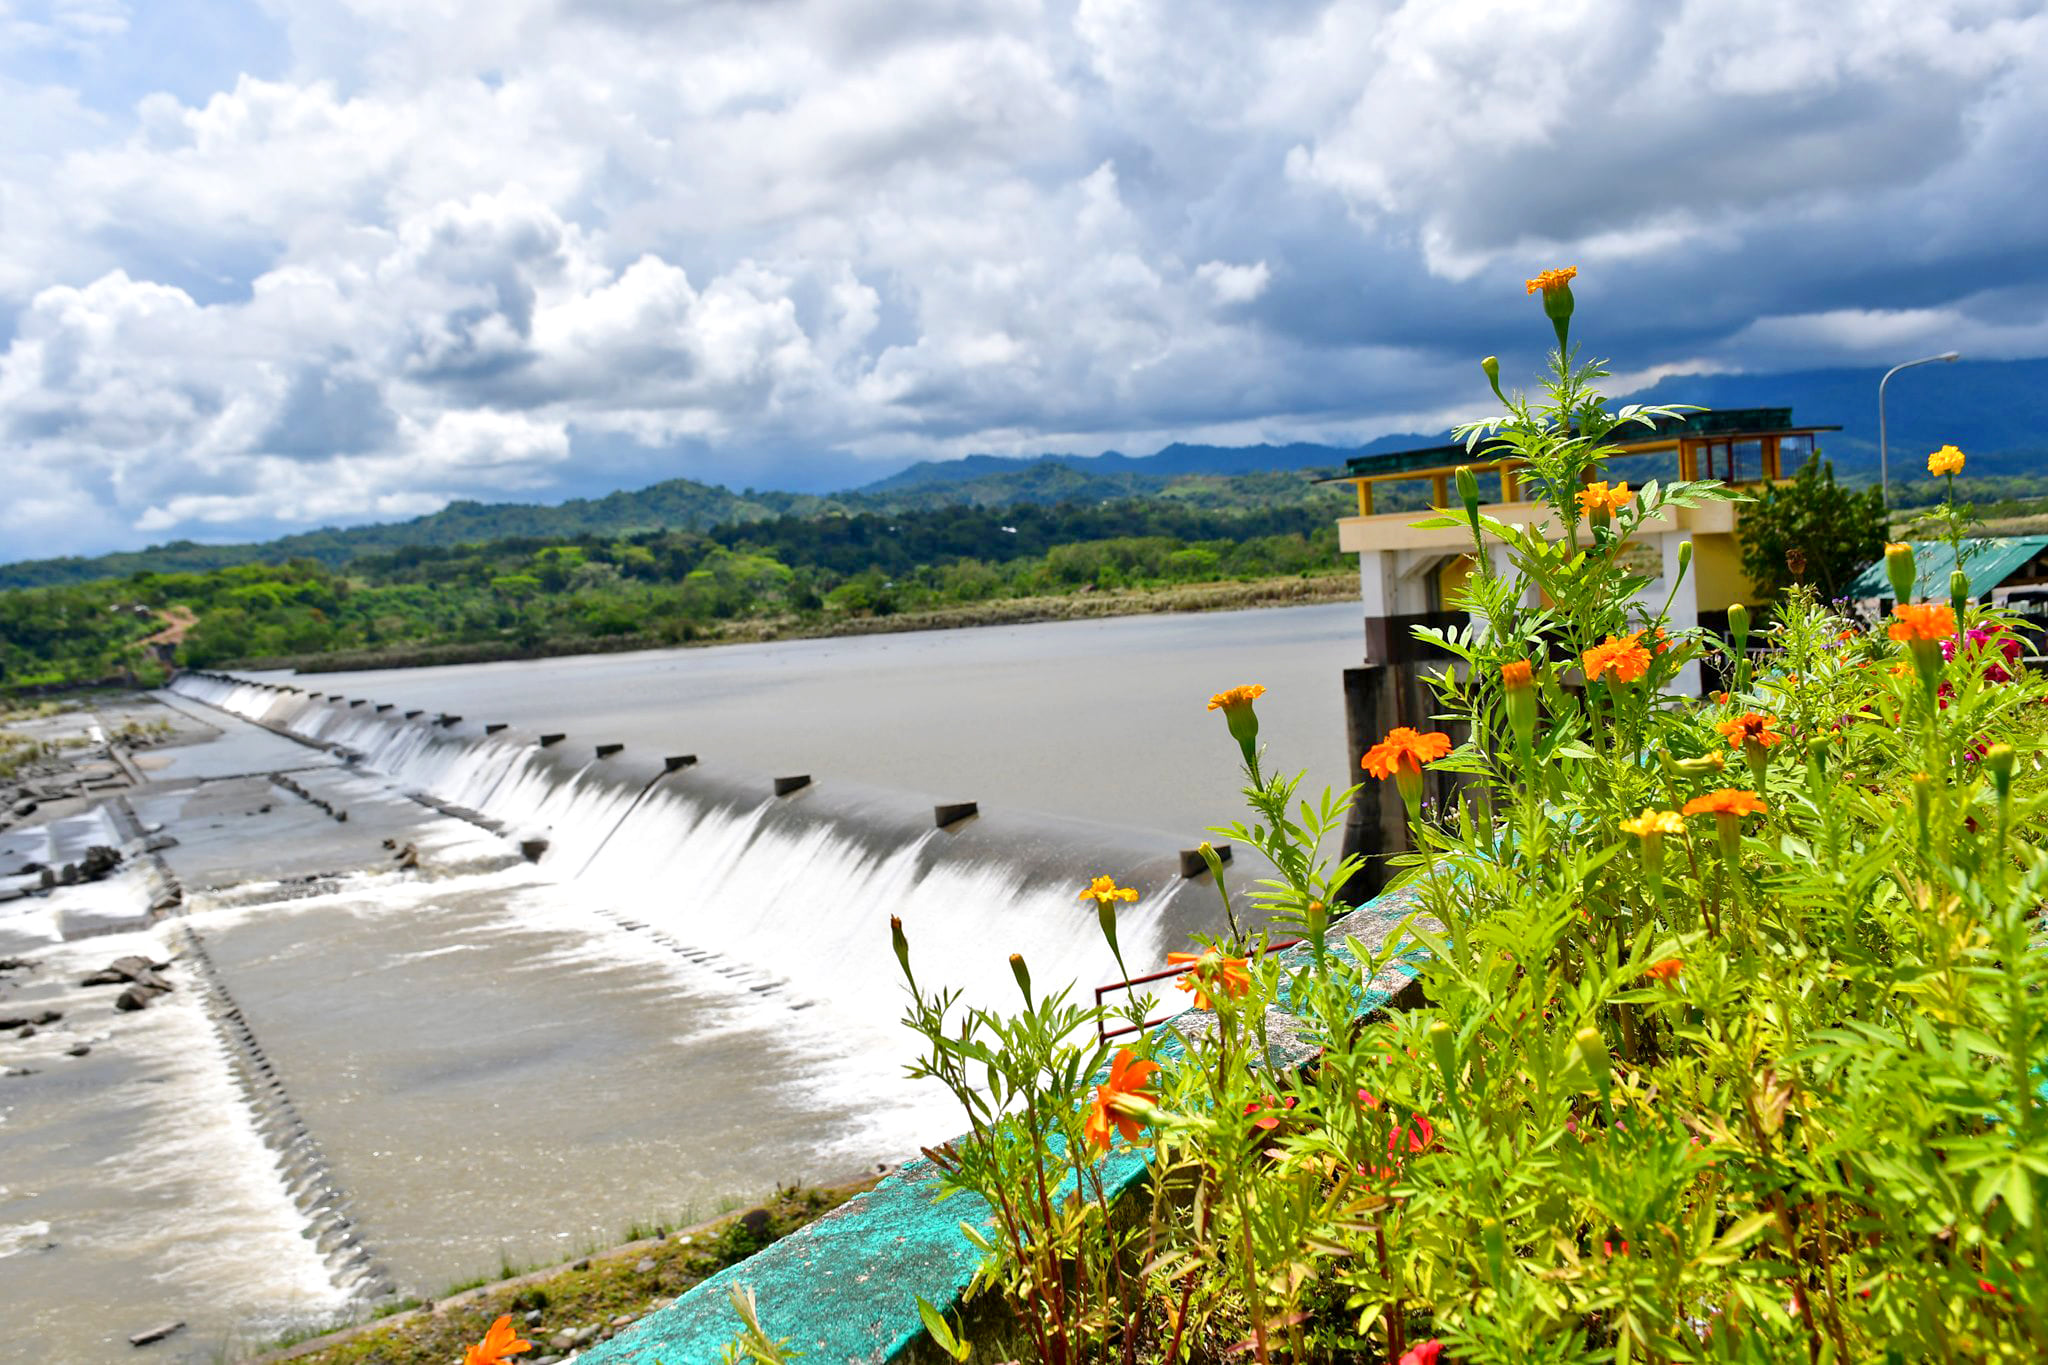 Irrigation water delivery finally resumed at Upper Chico River Irrigation System (UCRIS) in Tabuk City, Kalinga on March 16, 2021, 10 a.m., three days after the emergency shutdown. Photo courtesy of NIA Kalinga IMO